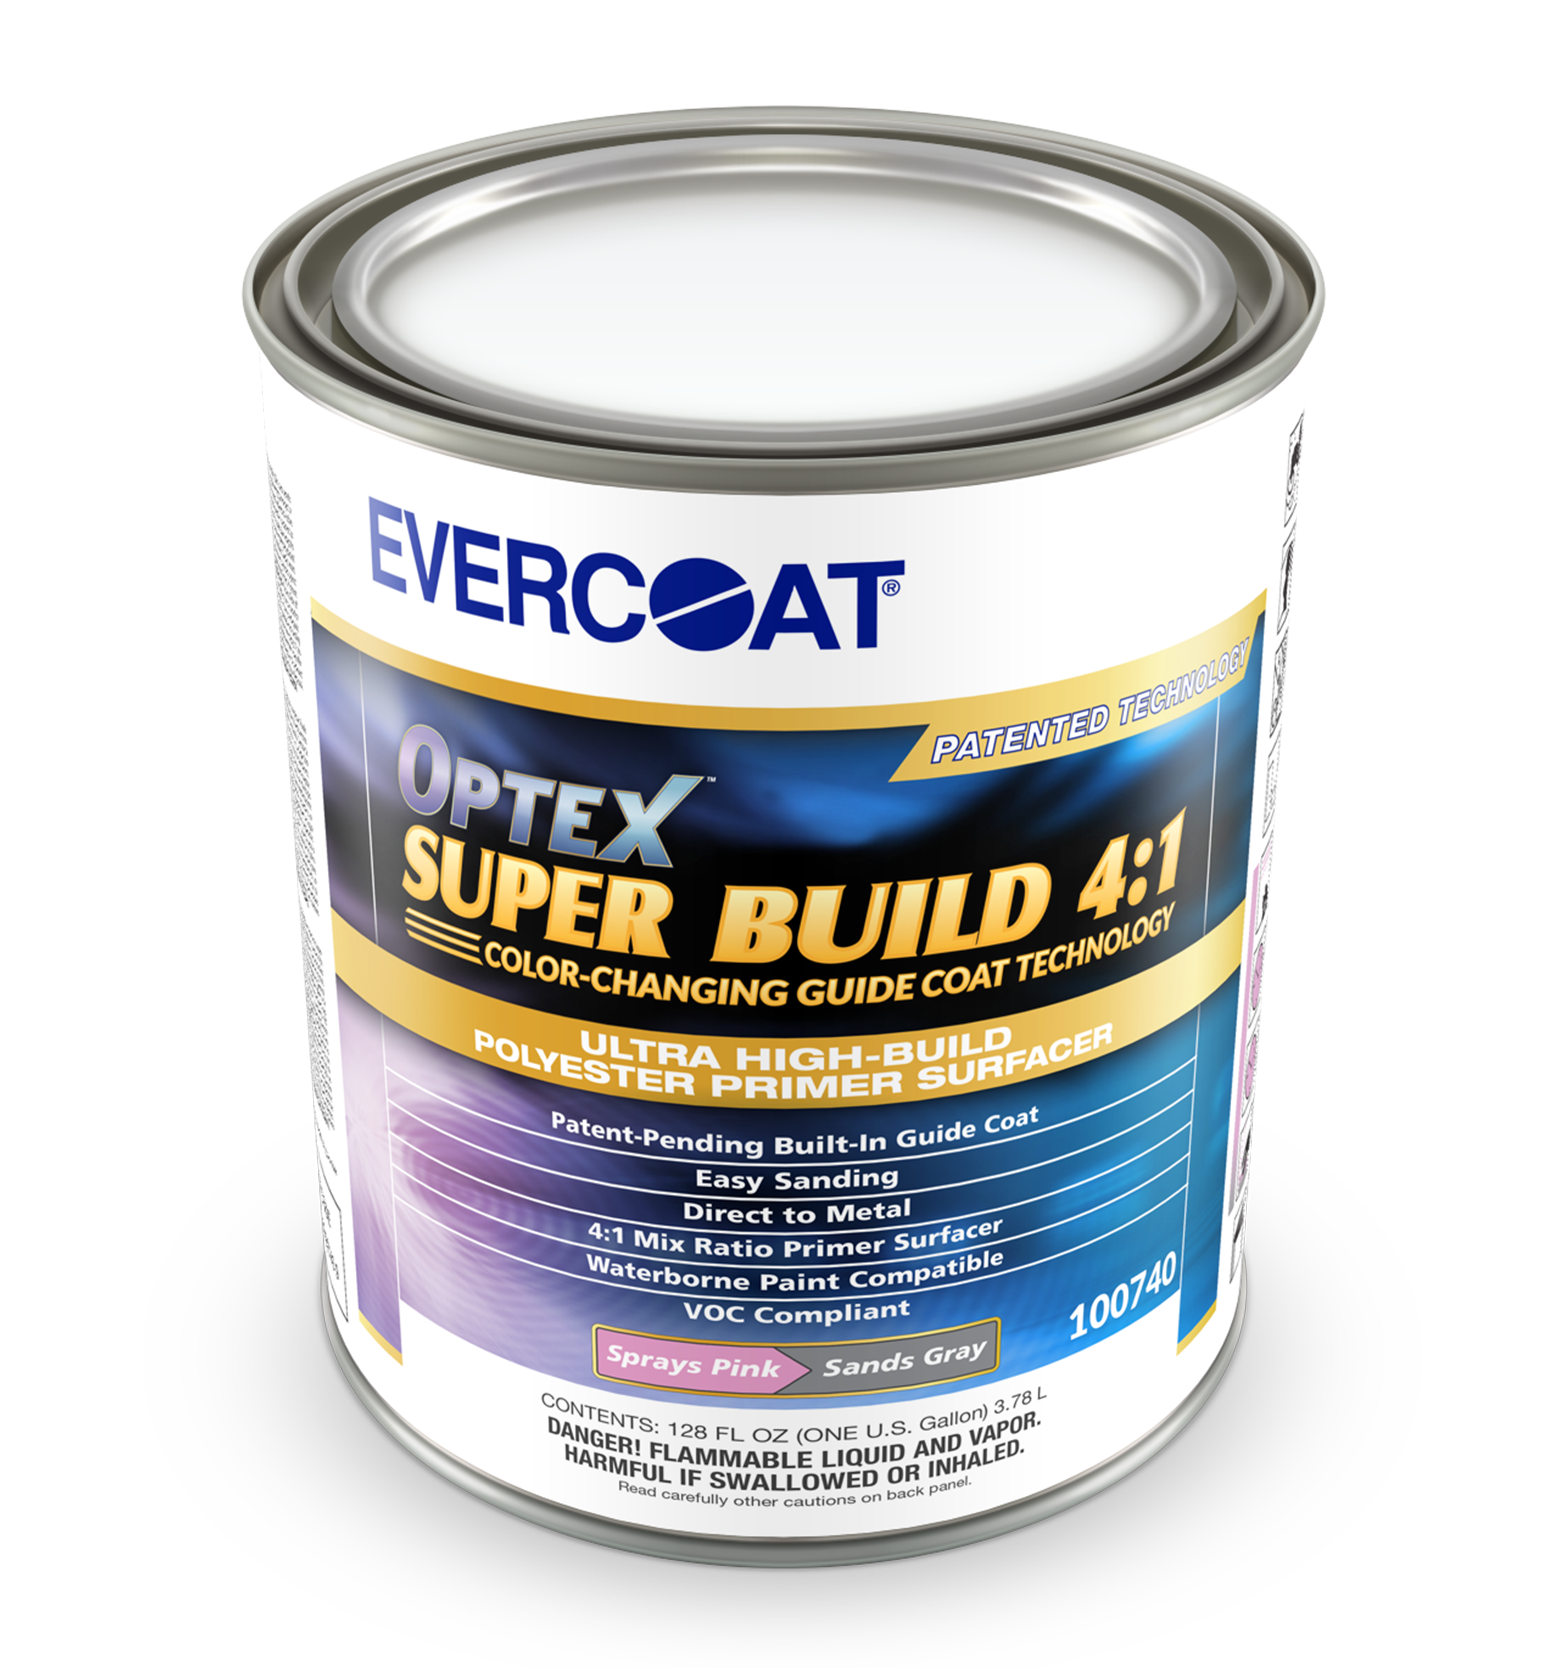 Evercoat Super Build OPTEX